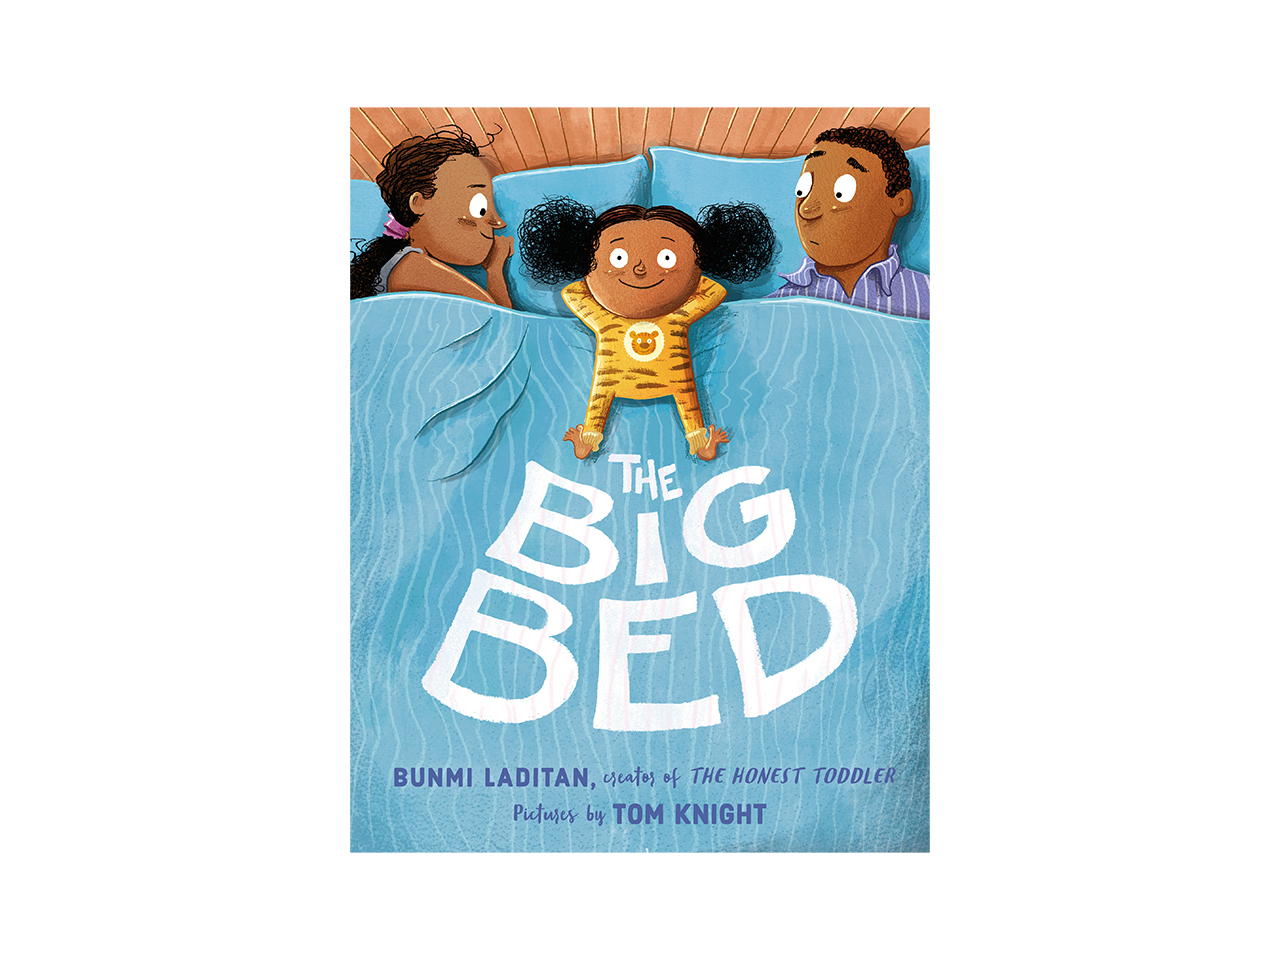 Cover art for the book, The Big Bed. Shows a little girl in striped pajamas sleeping between her parents